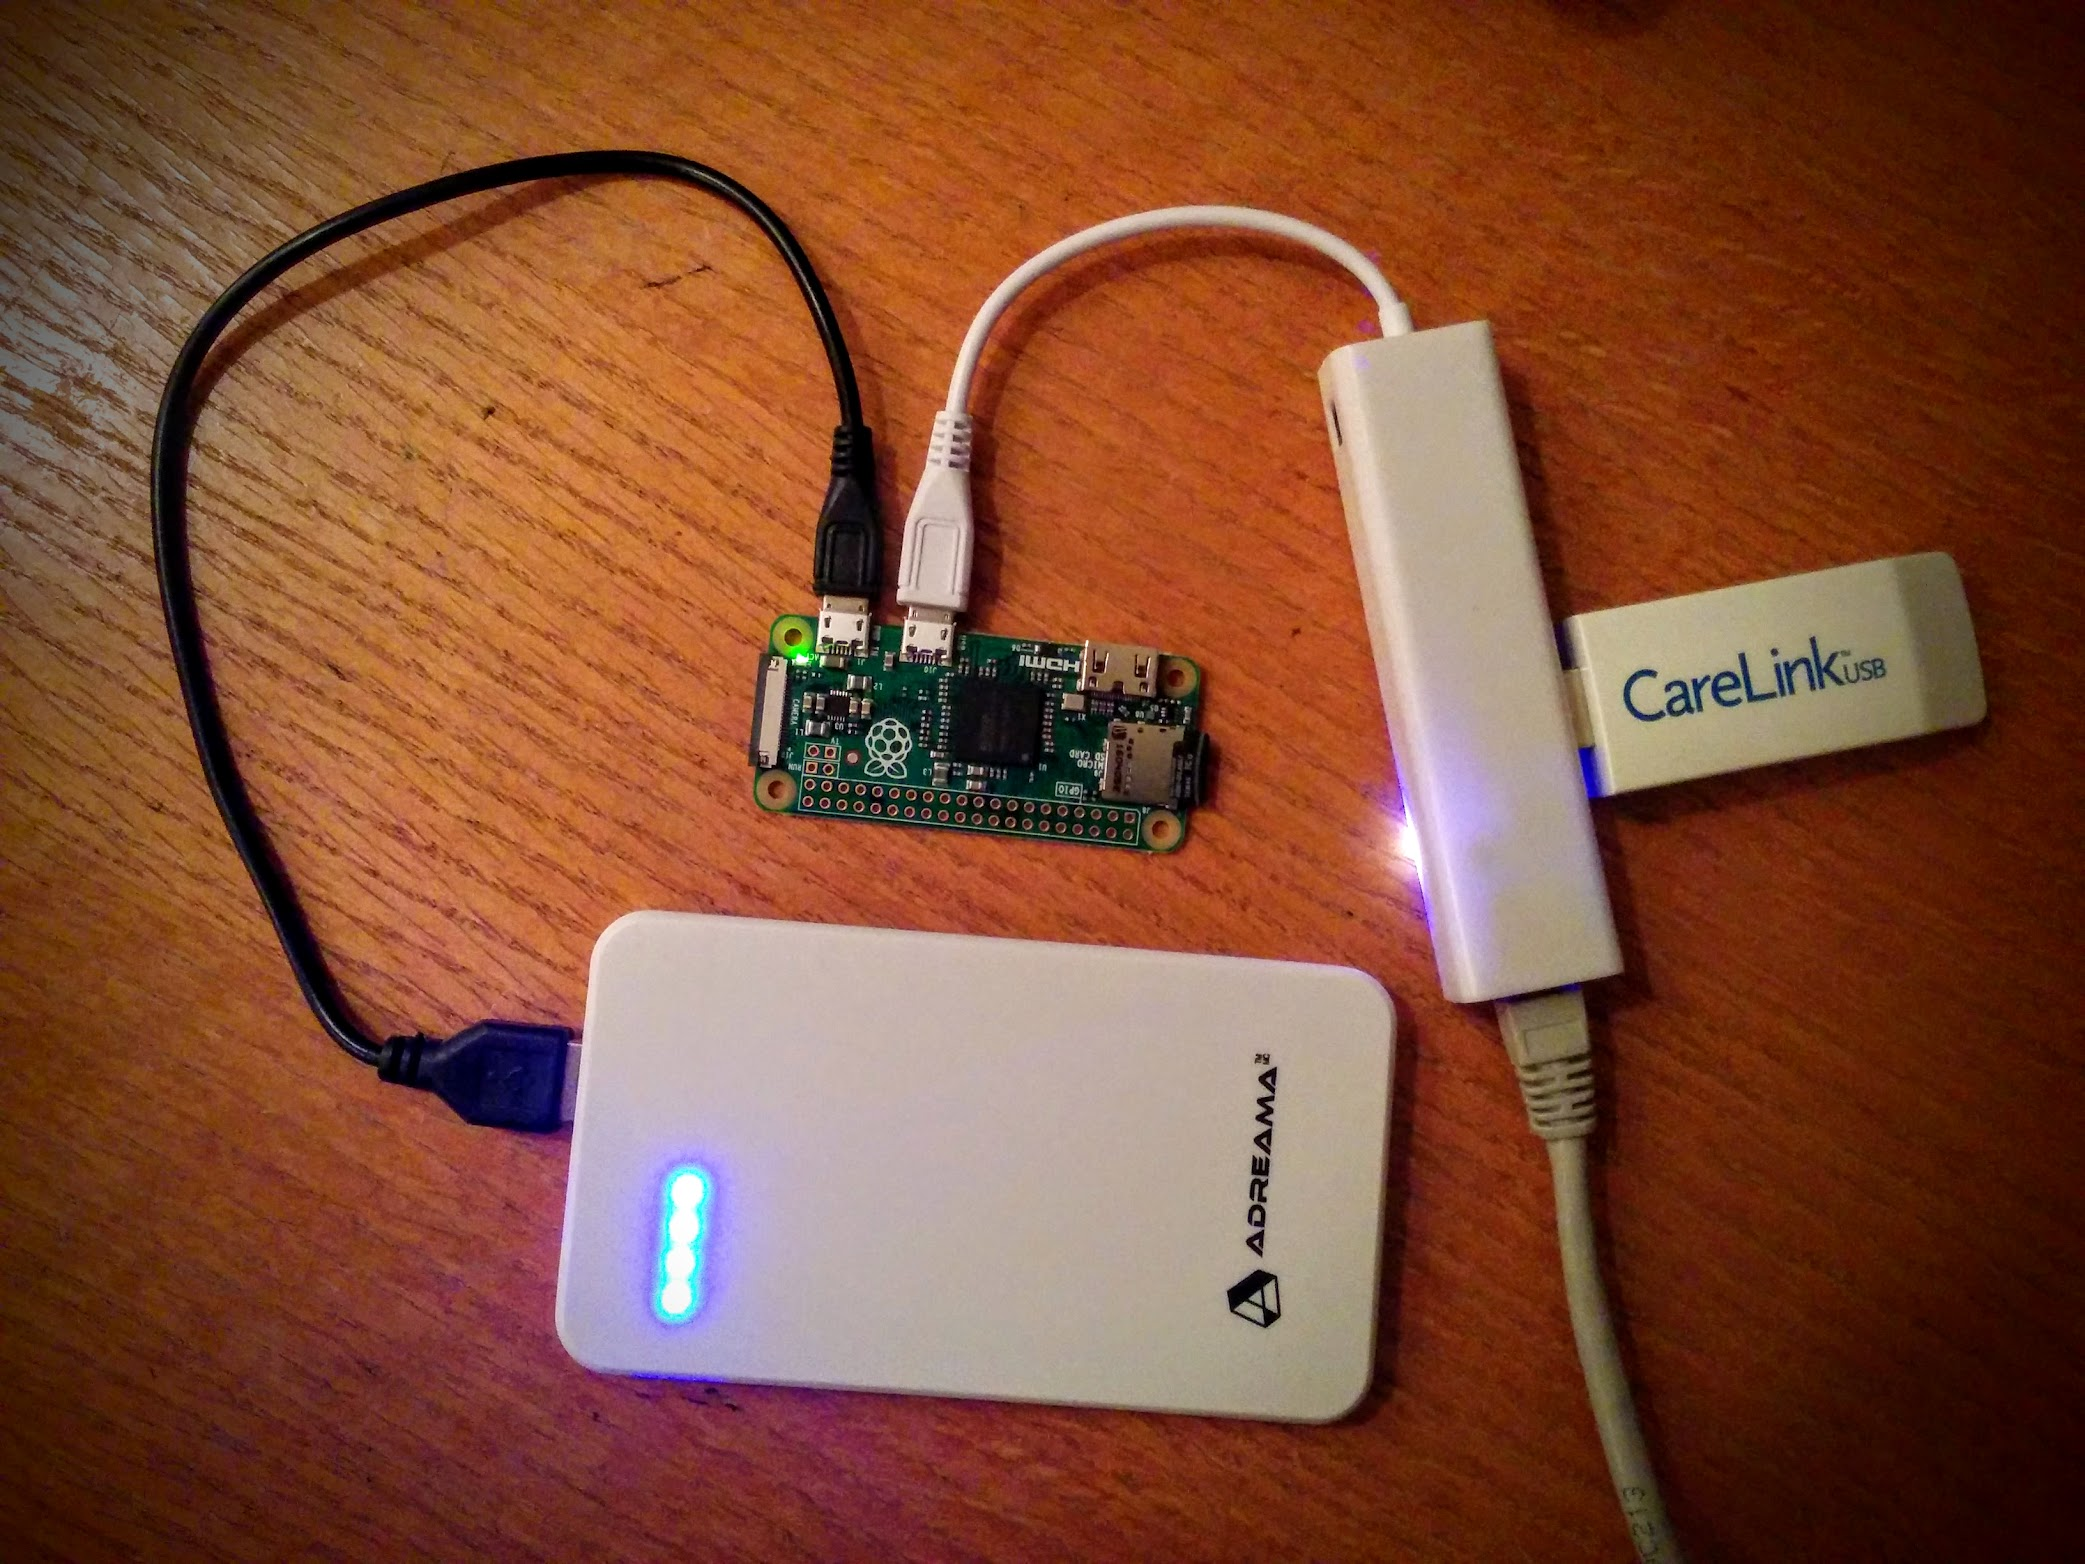 Carelink Usb Driver Download Windows 8